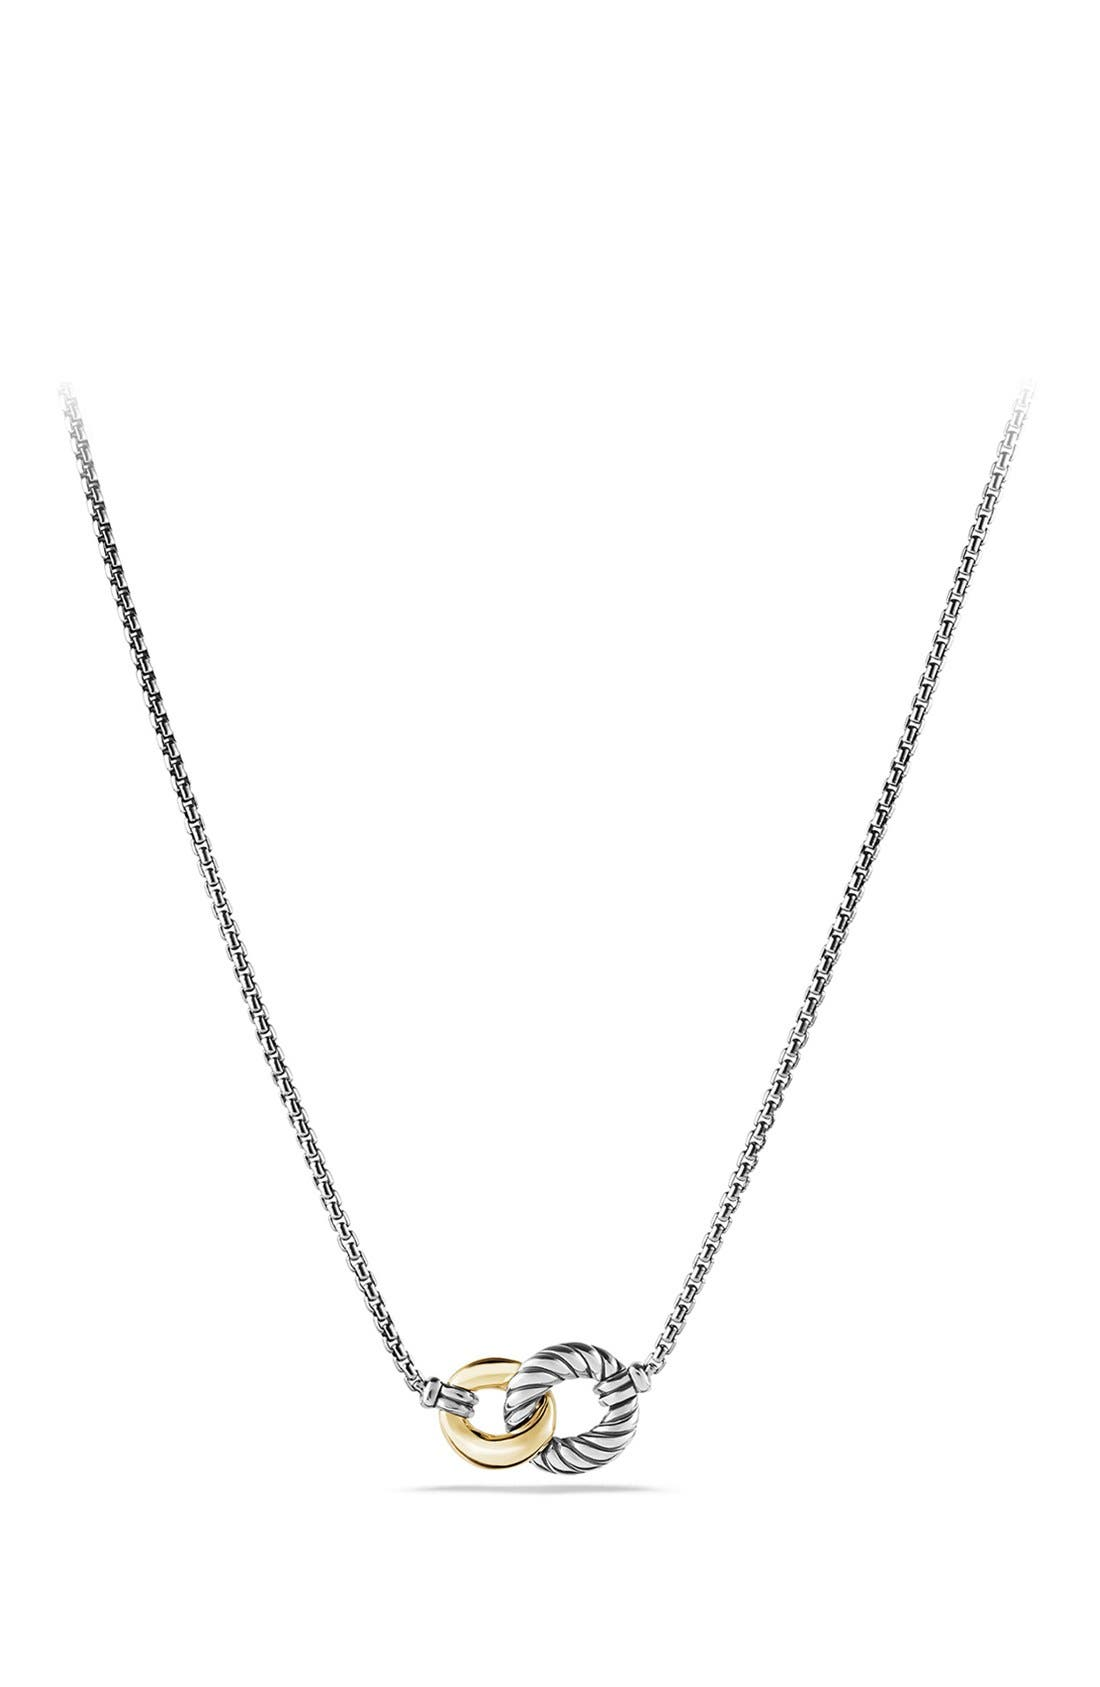 'Belmont' Curb Link Necklace with 18K Gold,                         Main,                         color, TWO TONE